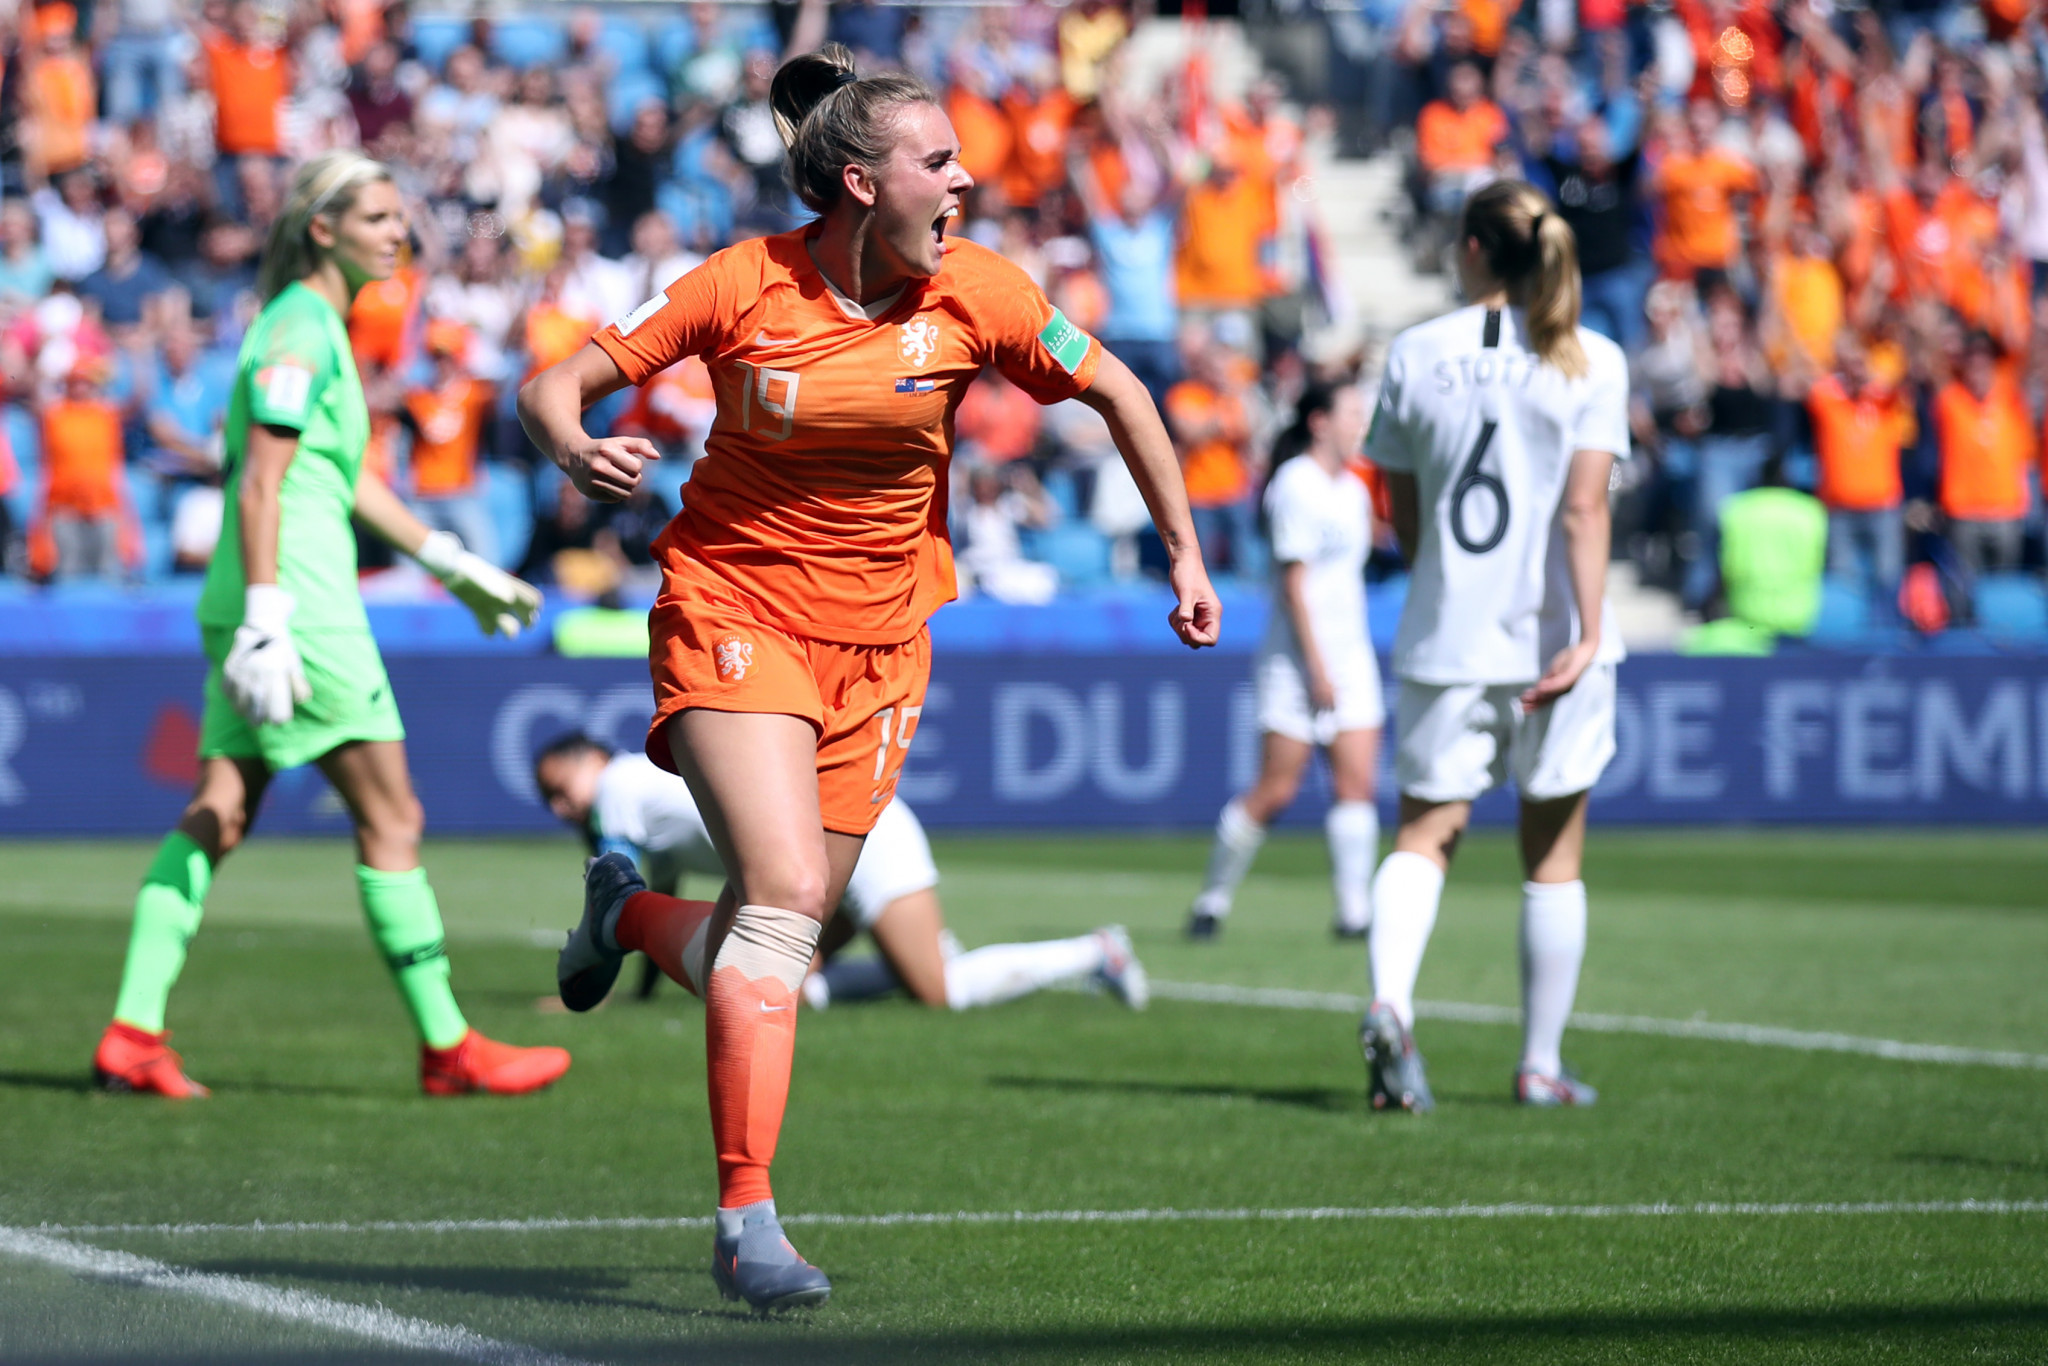 Jill Roord scored a last minute winner for The Netherlands, with the score finishing at 1-0 ©Getty Images